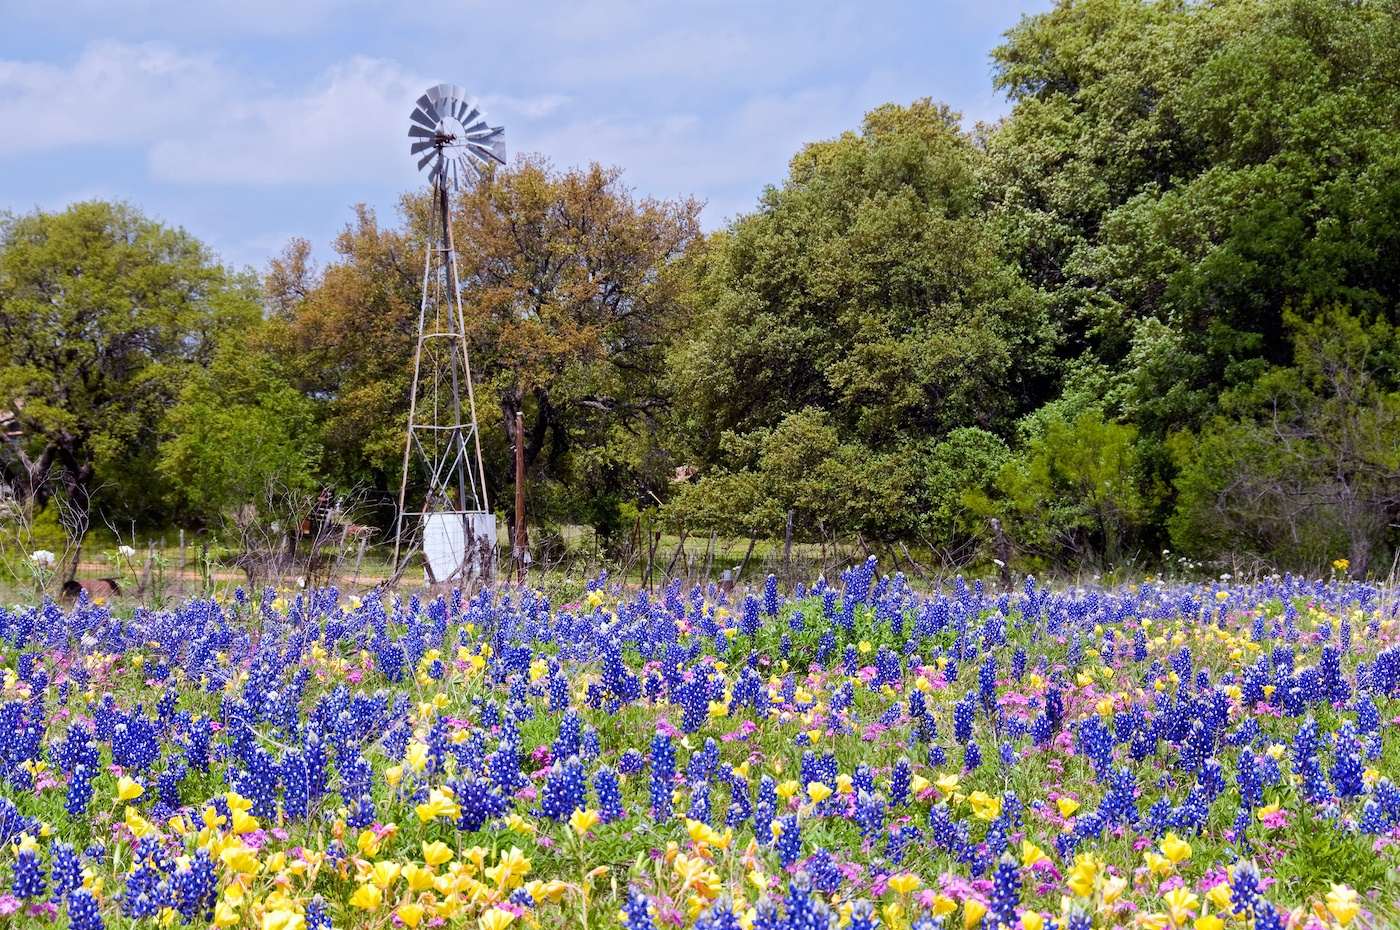 Texas state flower